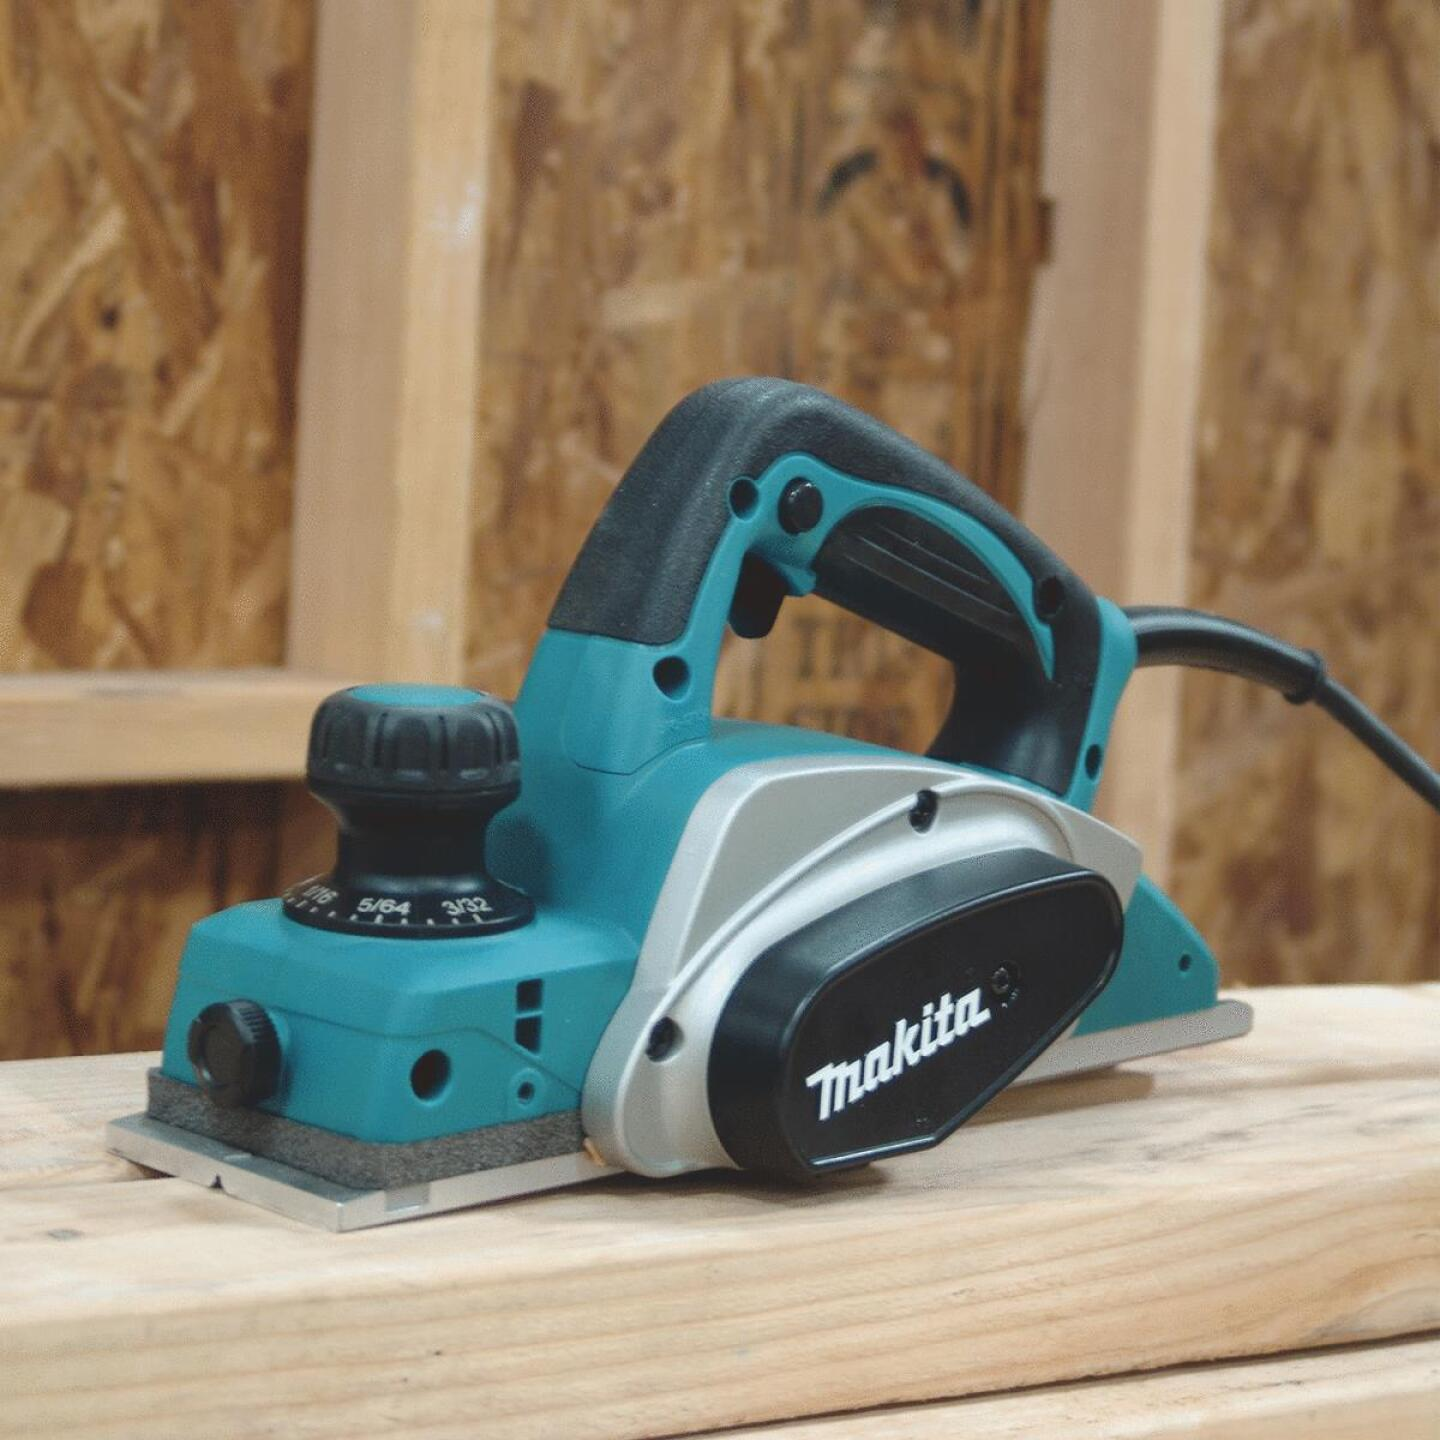 Makita 6.5A 3-1/4 In. 3/32 In. Planing Depth Planer Image 5